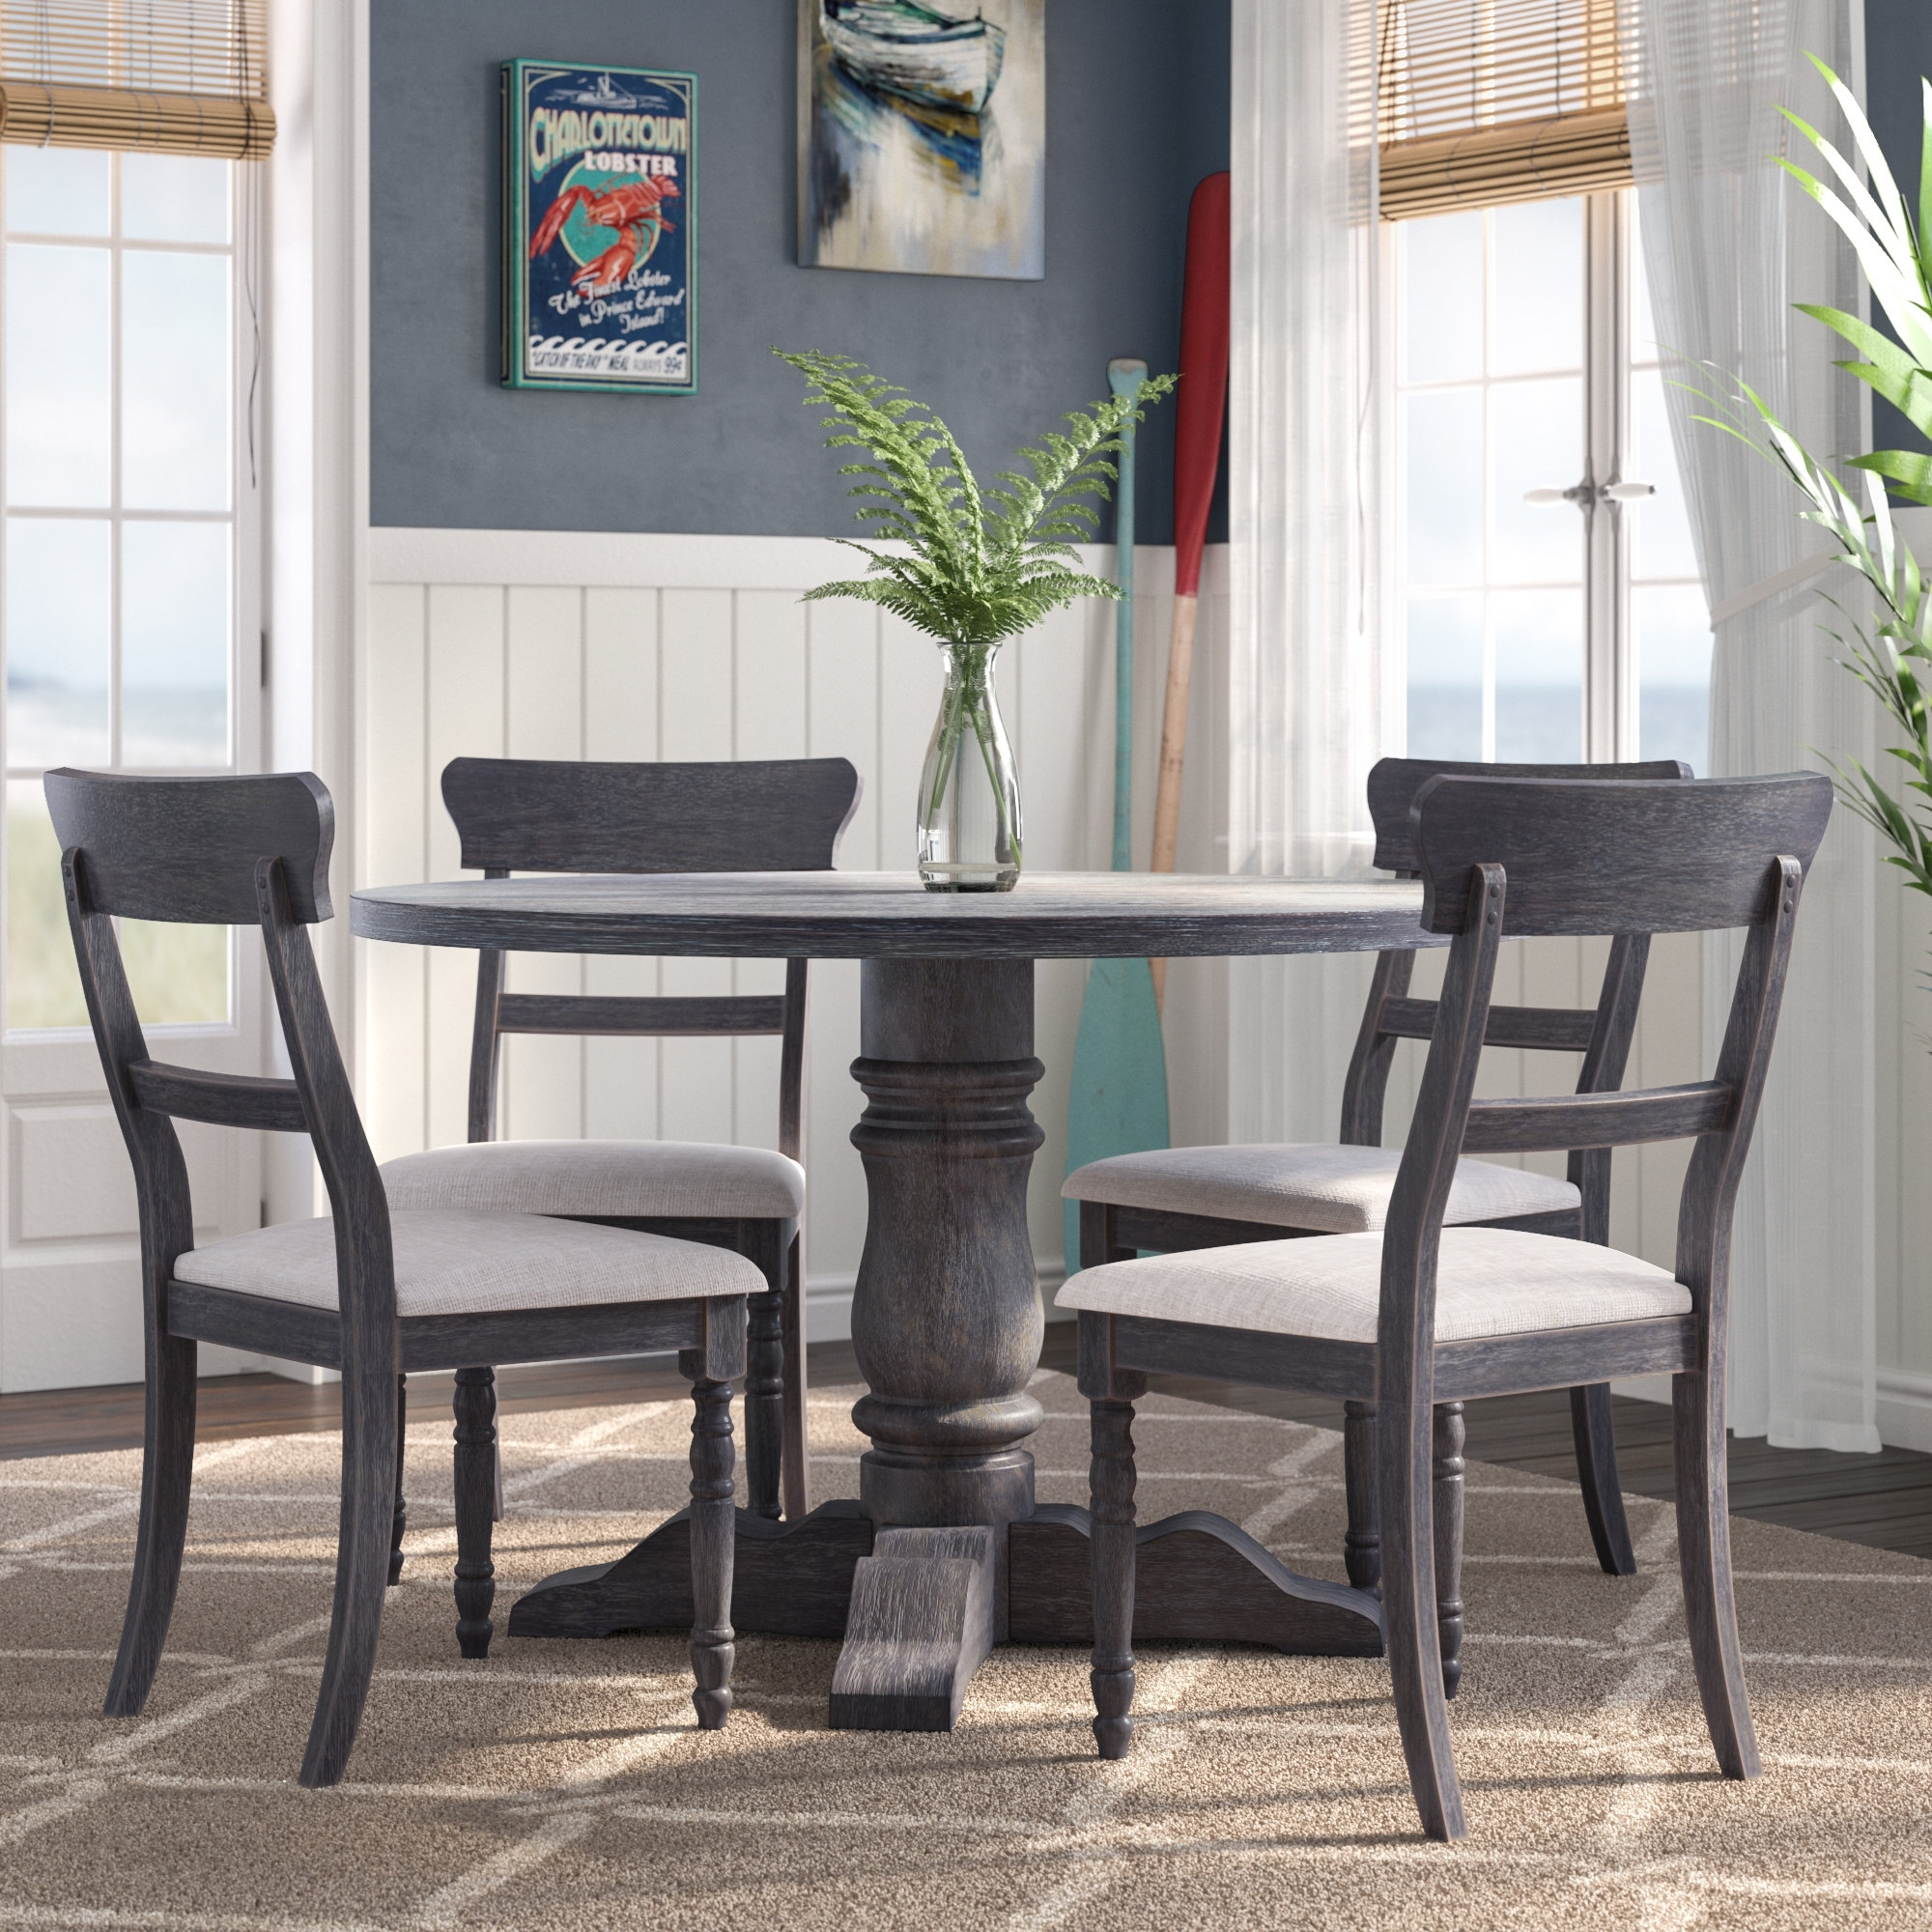 Longshore Tides Silverman 5 Piece Dining Set & Reviews | Wayfair Inside Most Recent Jaxon 5 Piece Extension Round Dining Sets With Wood Chairs (Image 14 of 20)